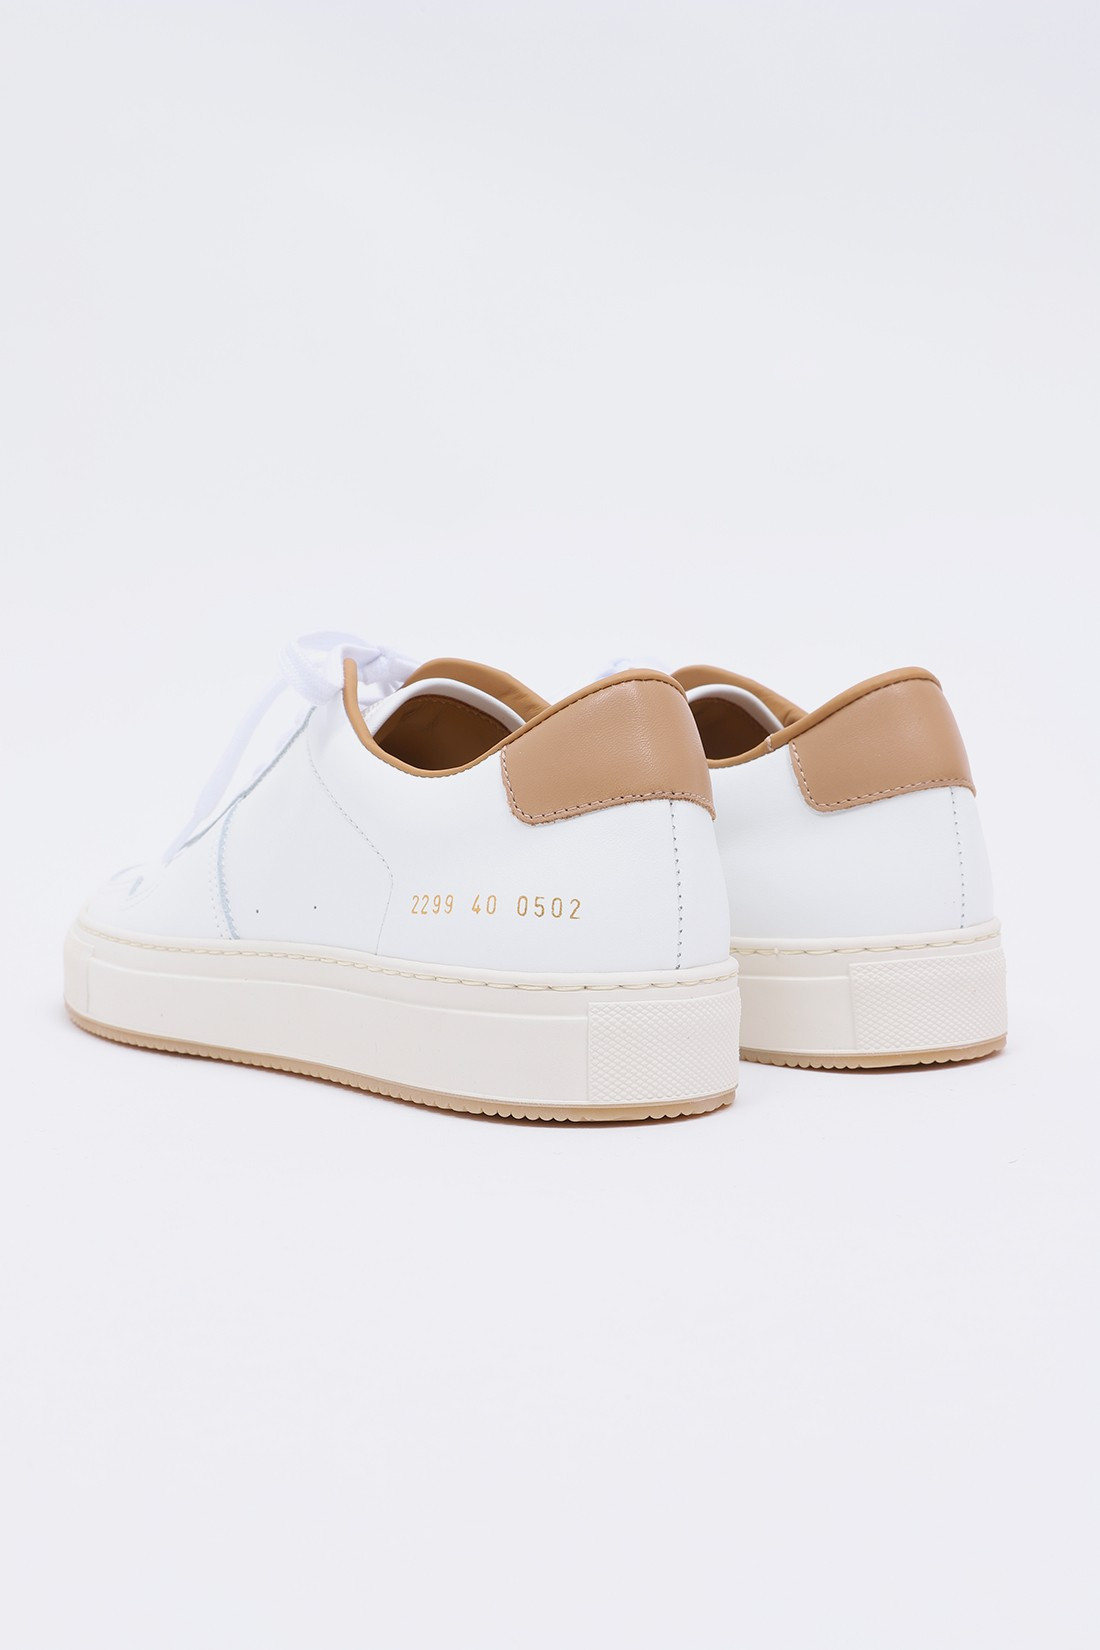 COMMON PROJECTS / Bball '90 2299 White/tan